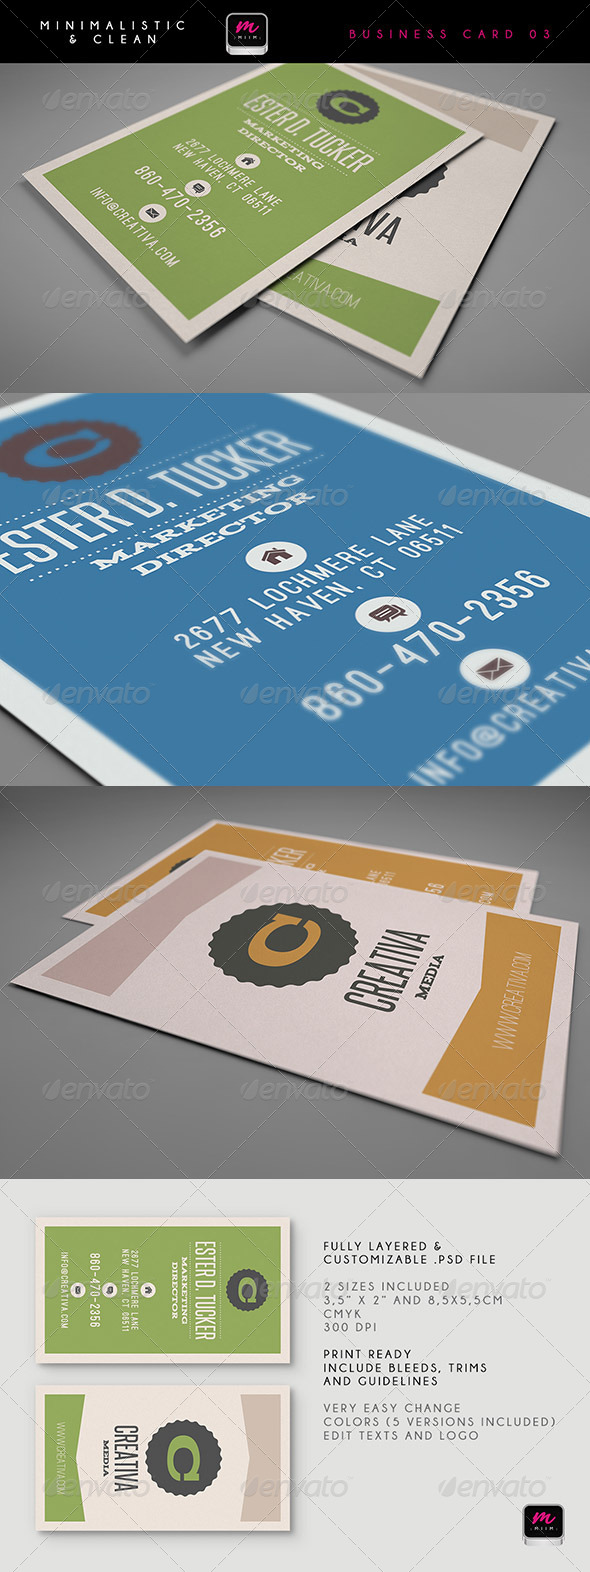 GraphicRiver Clean Business Card Template 04 5901533